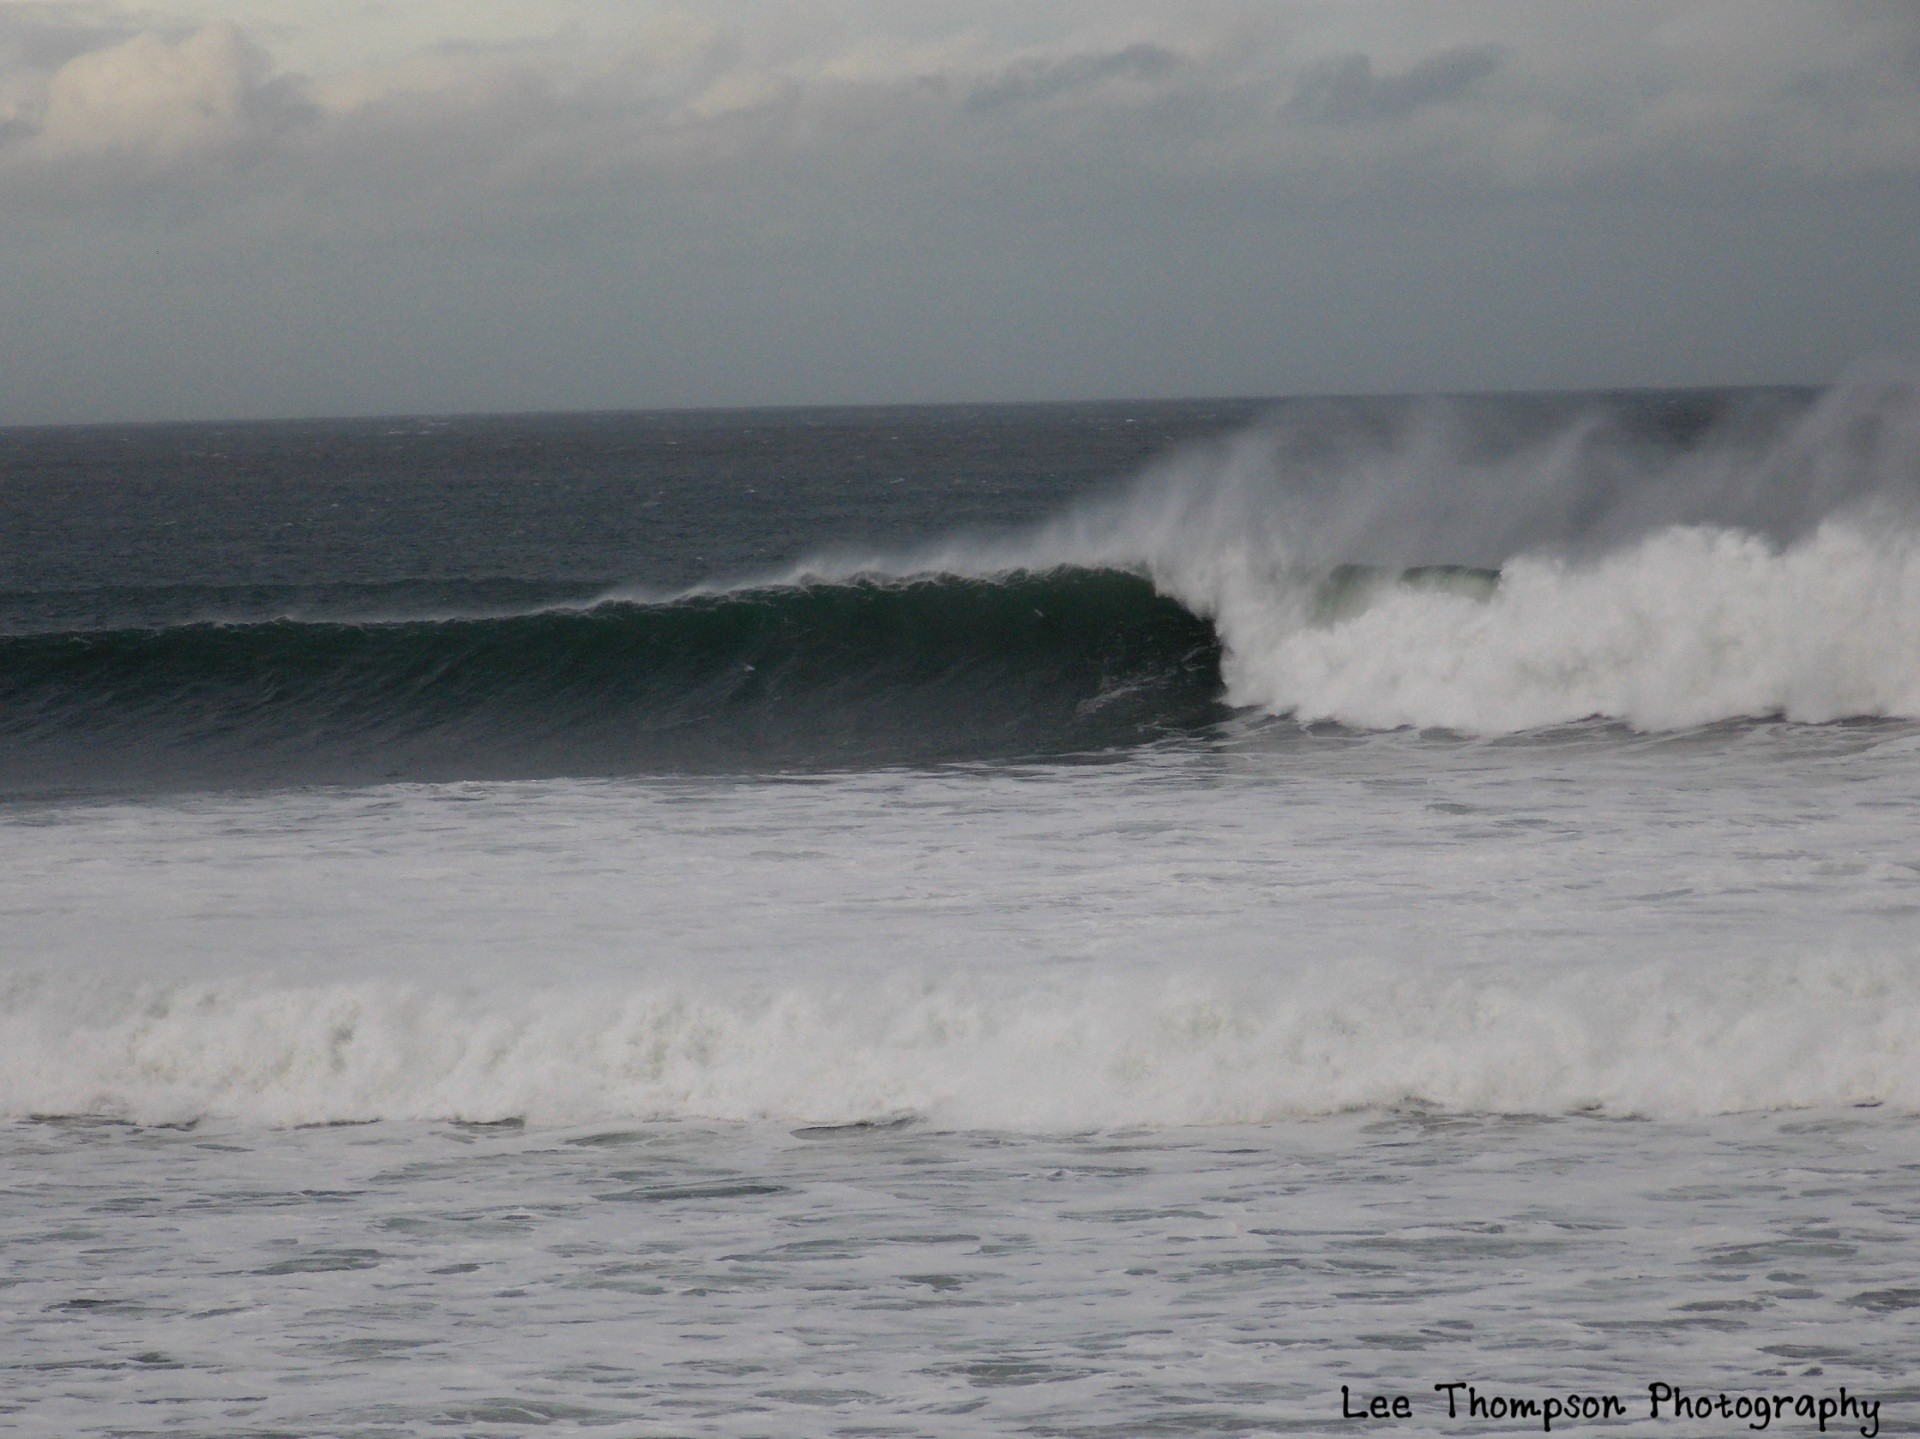 Lee Thompson's photo of Portrush